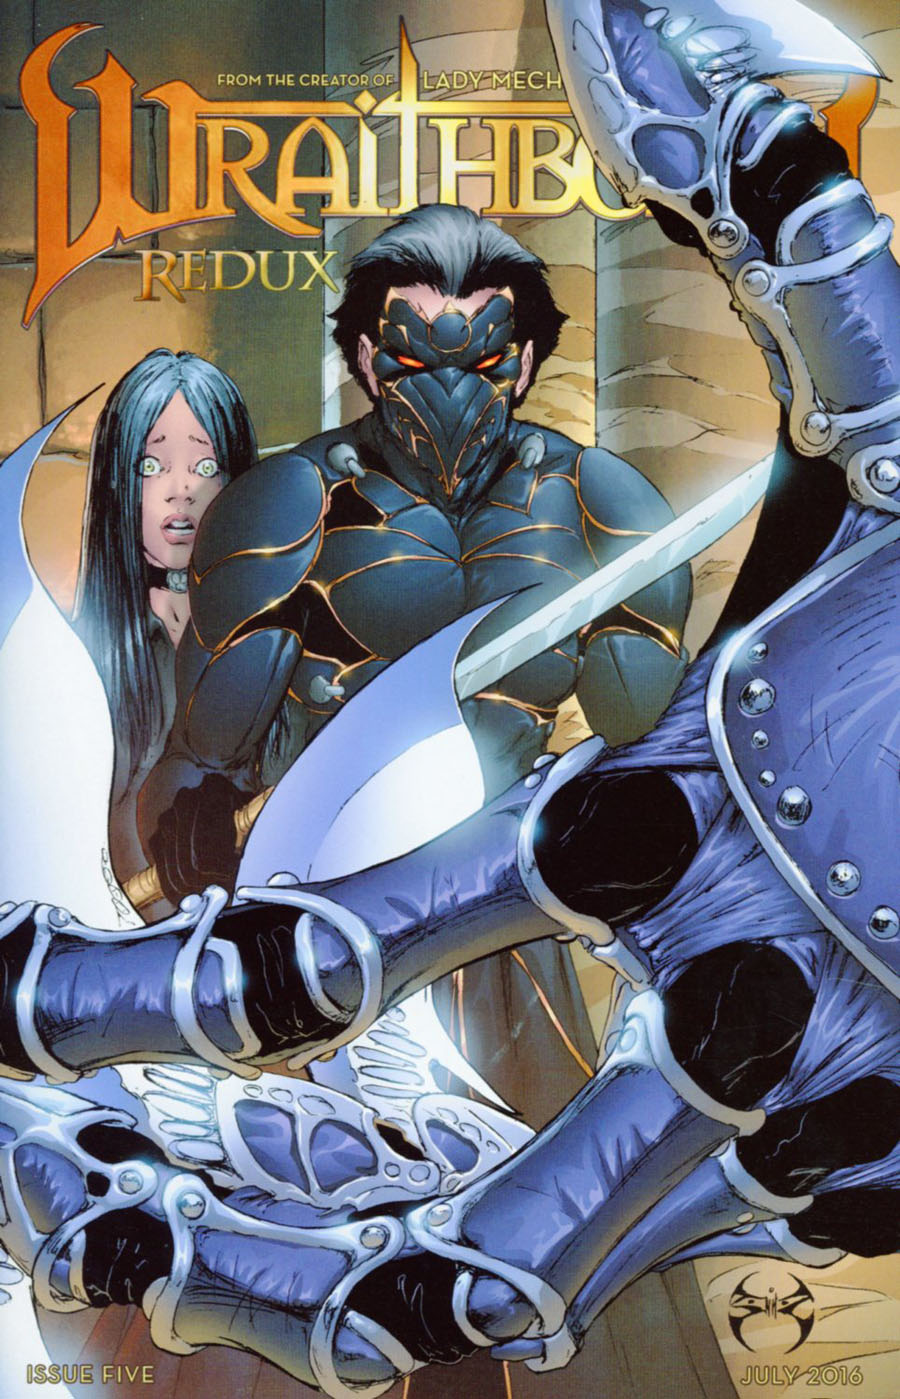 Wraithborn Redux #5 Cover B Regular Joe Benitez & Mike Garcia Cover